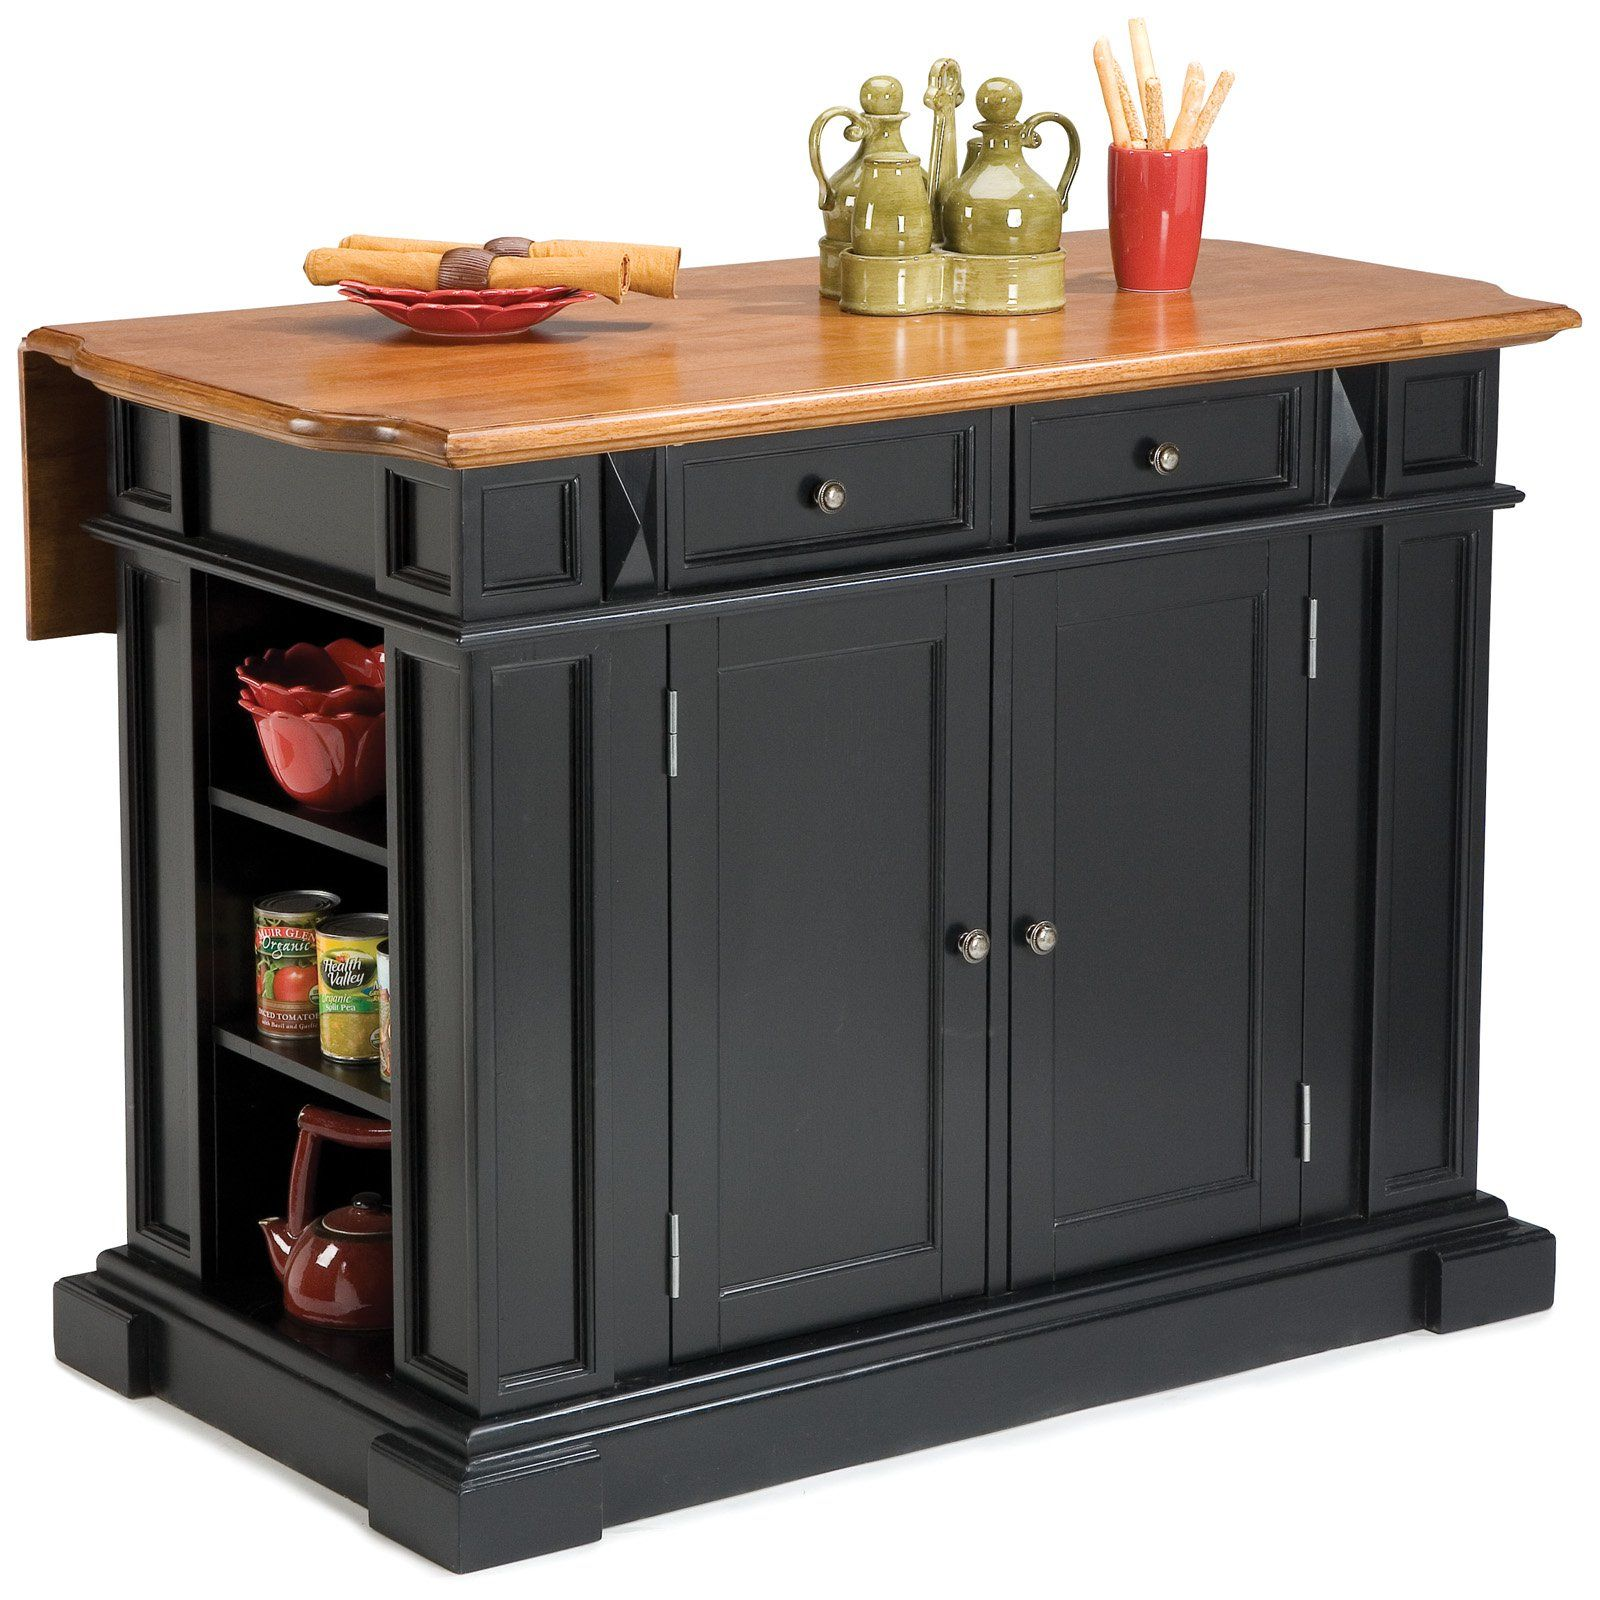 Home Styles Black And Oak Finish Large Kitchen Island   Kitchen Islands And  Carts At Hayneedle